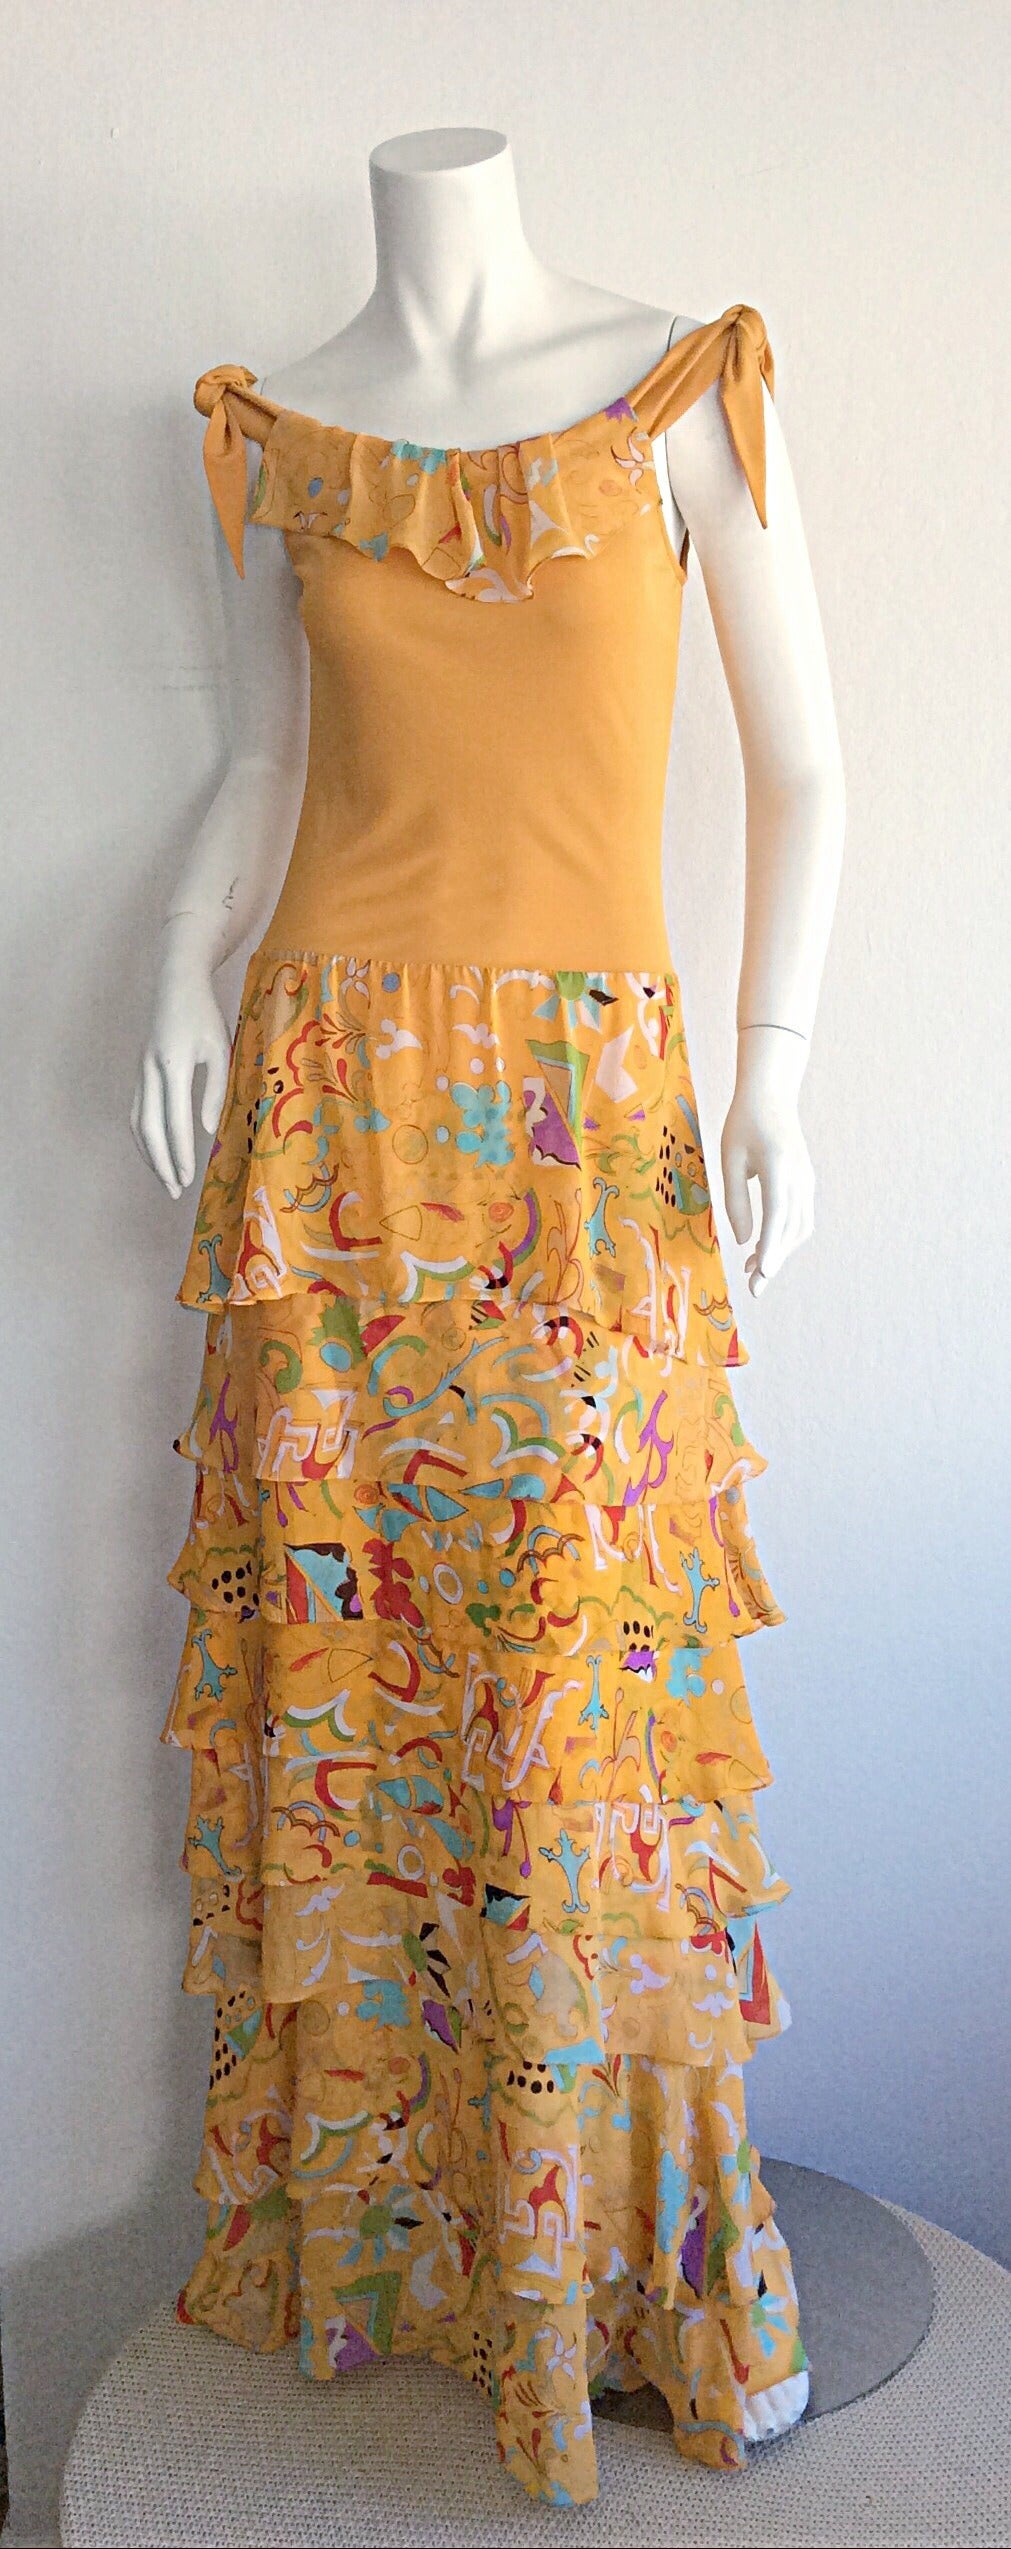 Incredible 1970s Stephen Burrows Jersey Maxi Dress Silk Tiered Skirt Brand New In New Never_worn Condition For Sale In Chicago, IL